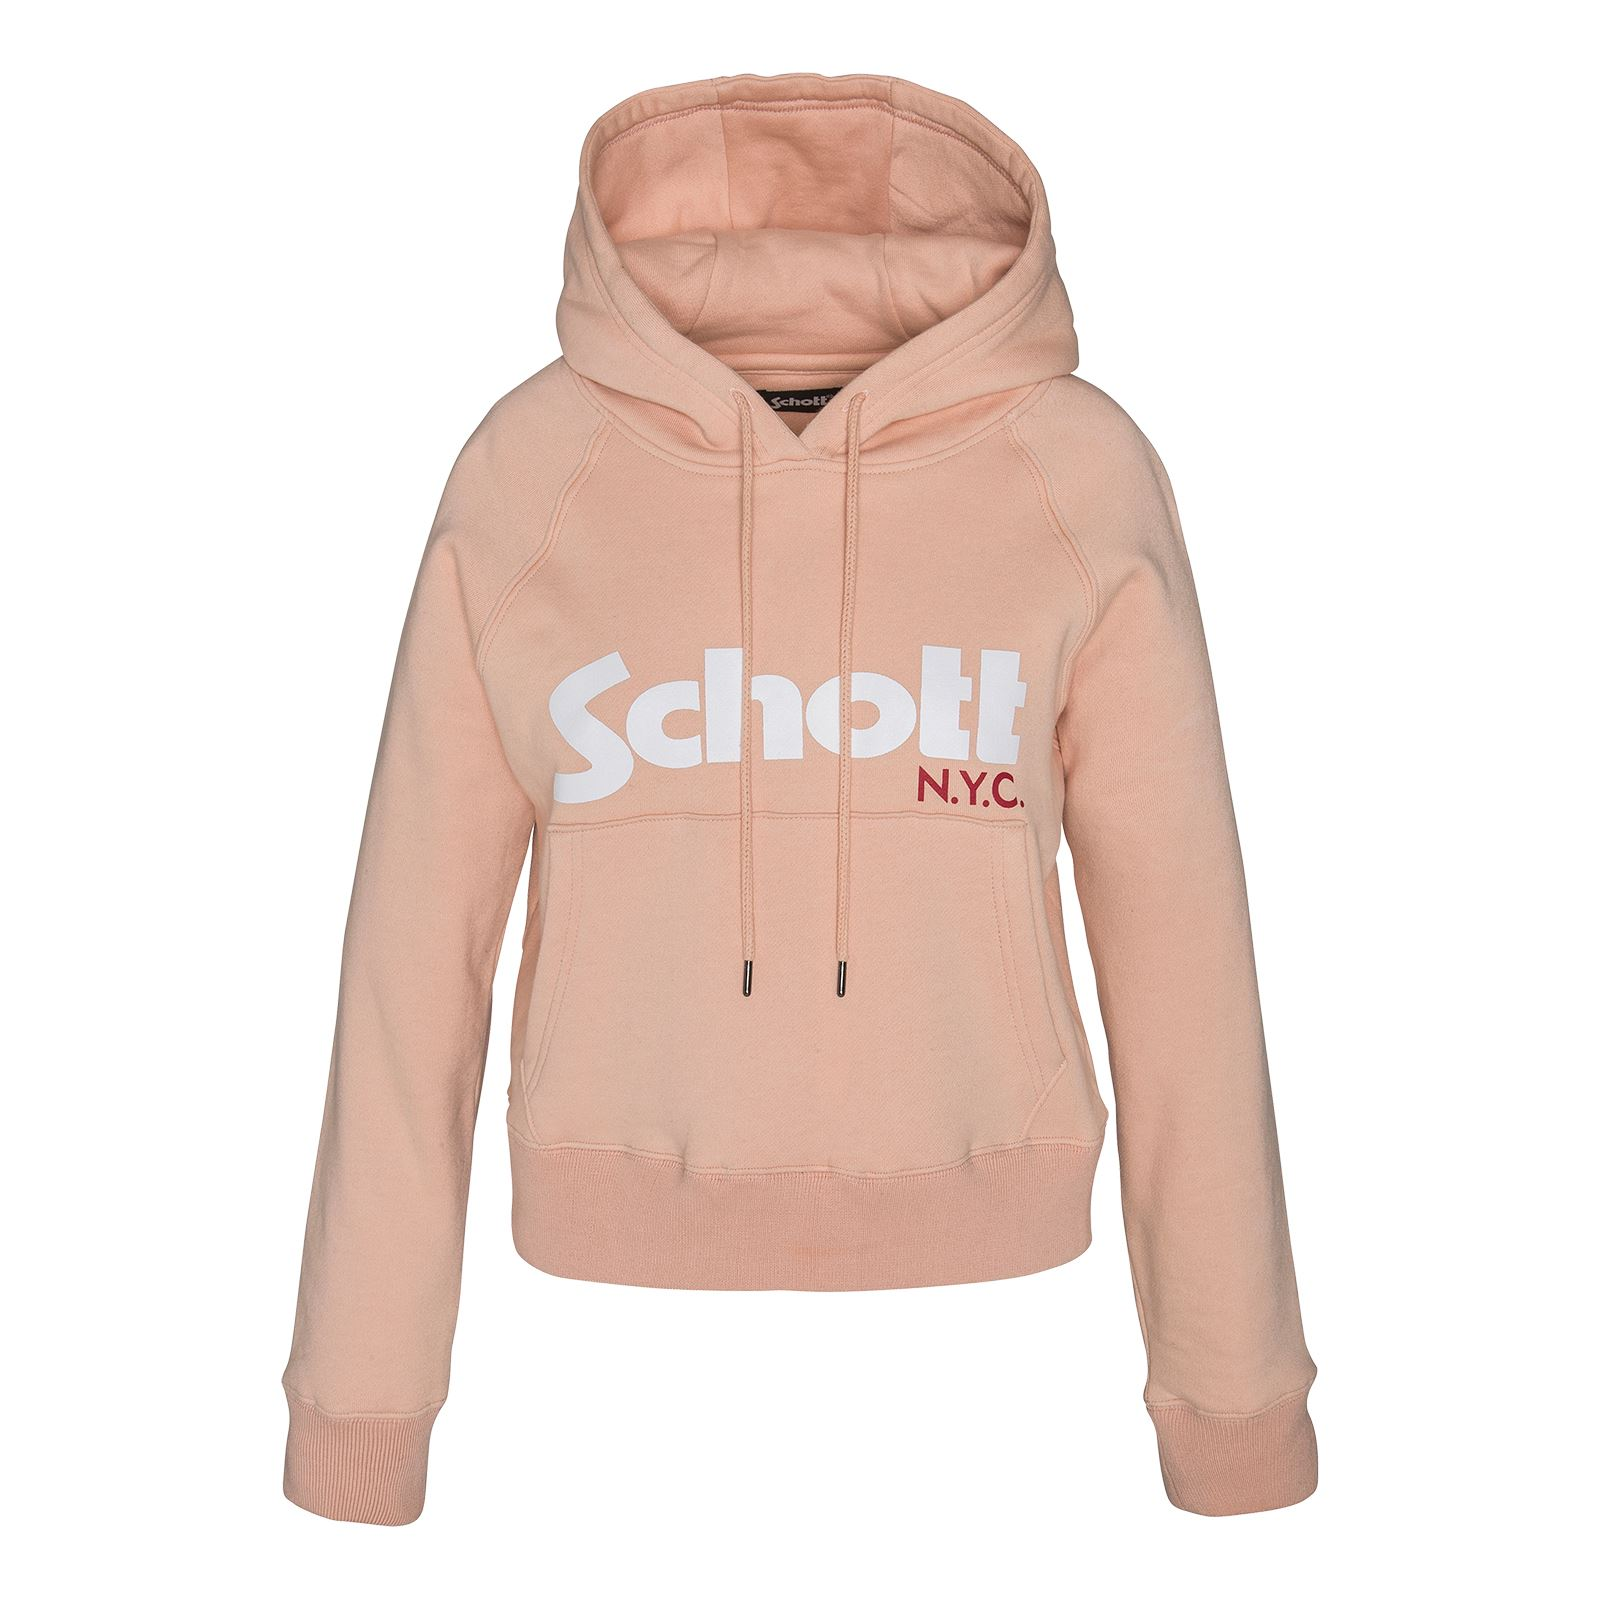 Sweat shirt Blush Blush Sweat shirt Schott Schott Schott HFYnxwEp4q